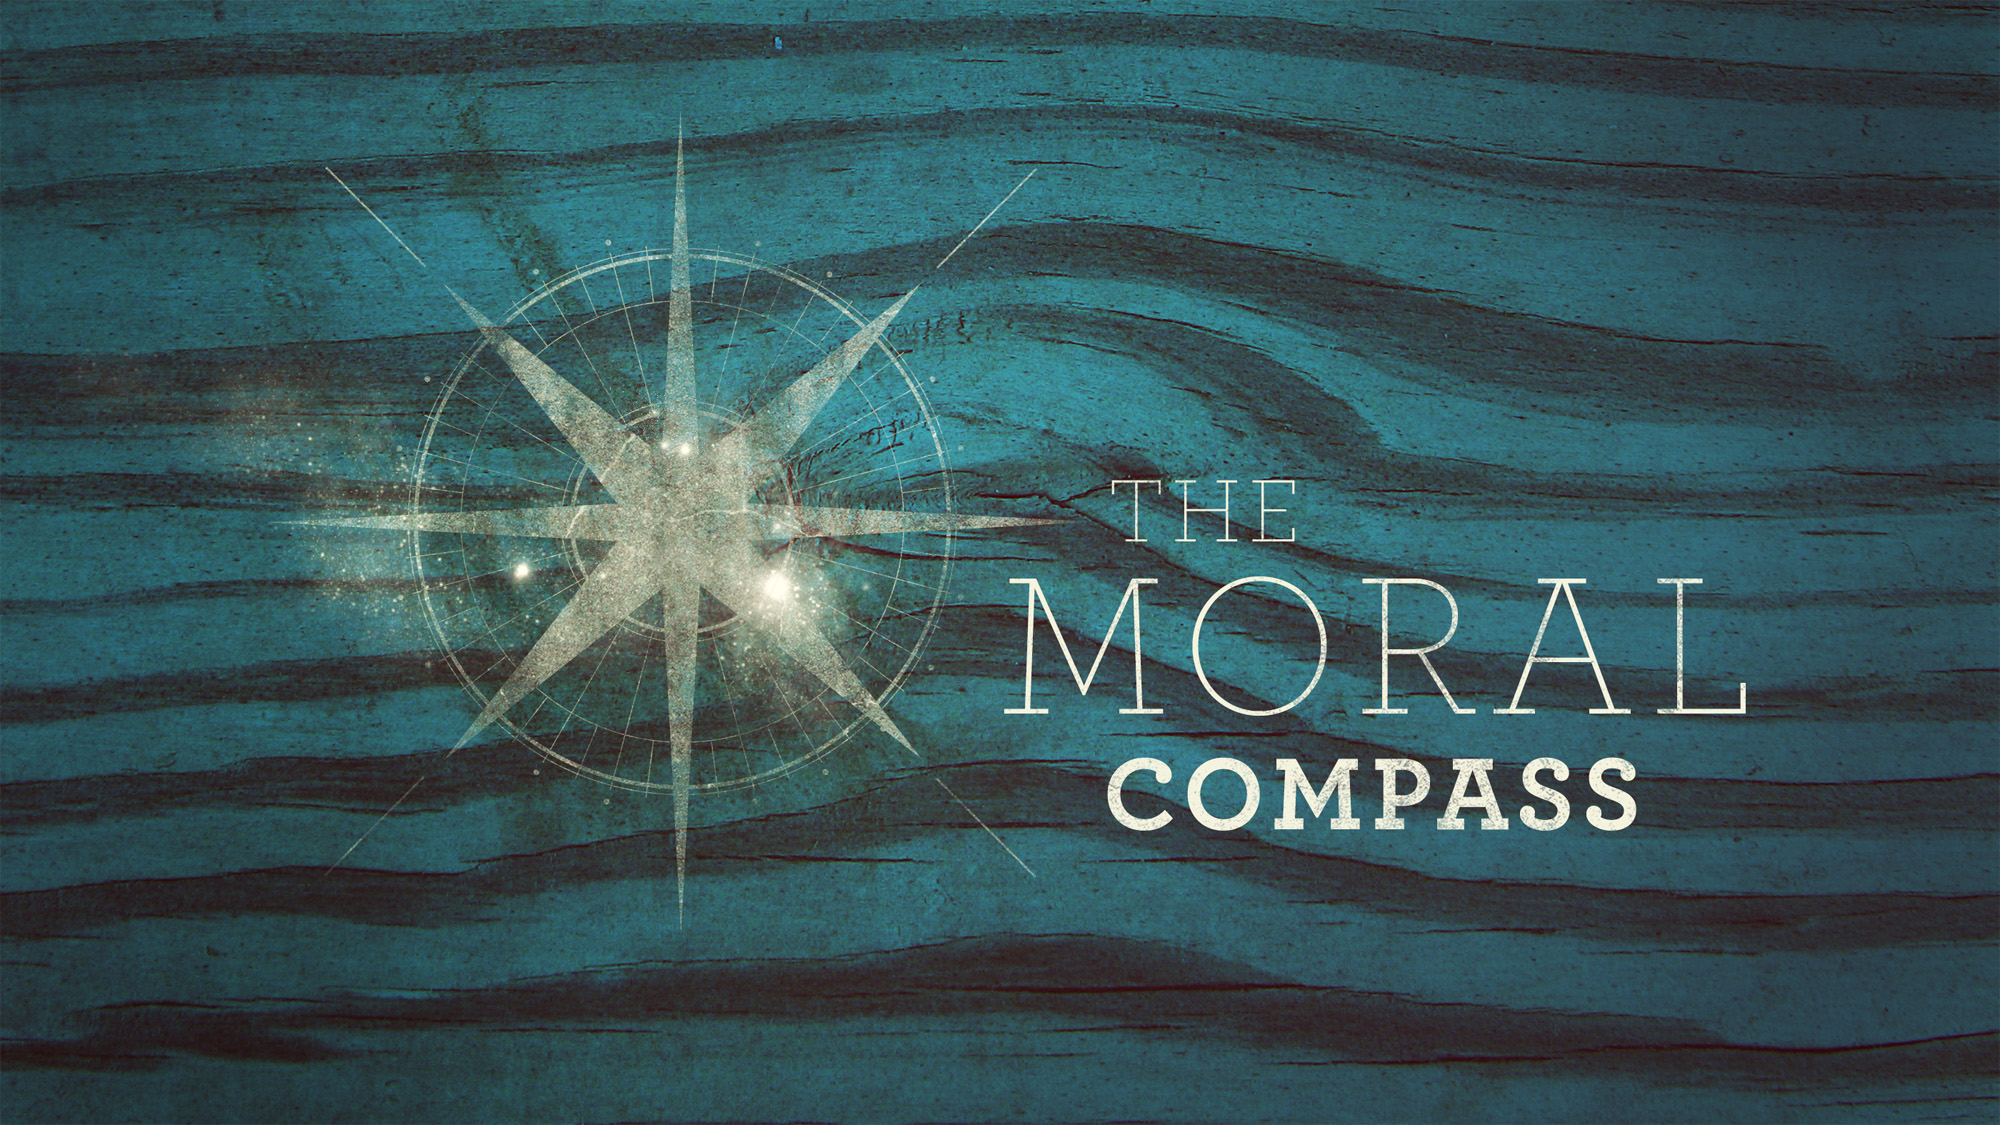 moral compass dating Men have no moral compass guy mid 30 dating women no older then 20 years old to me there predators who don,t care only for huge ego and image very selfish needs.